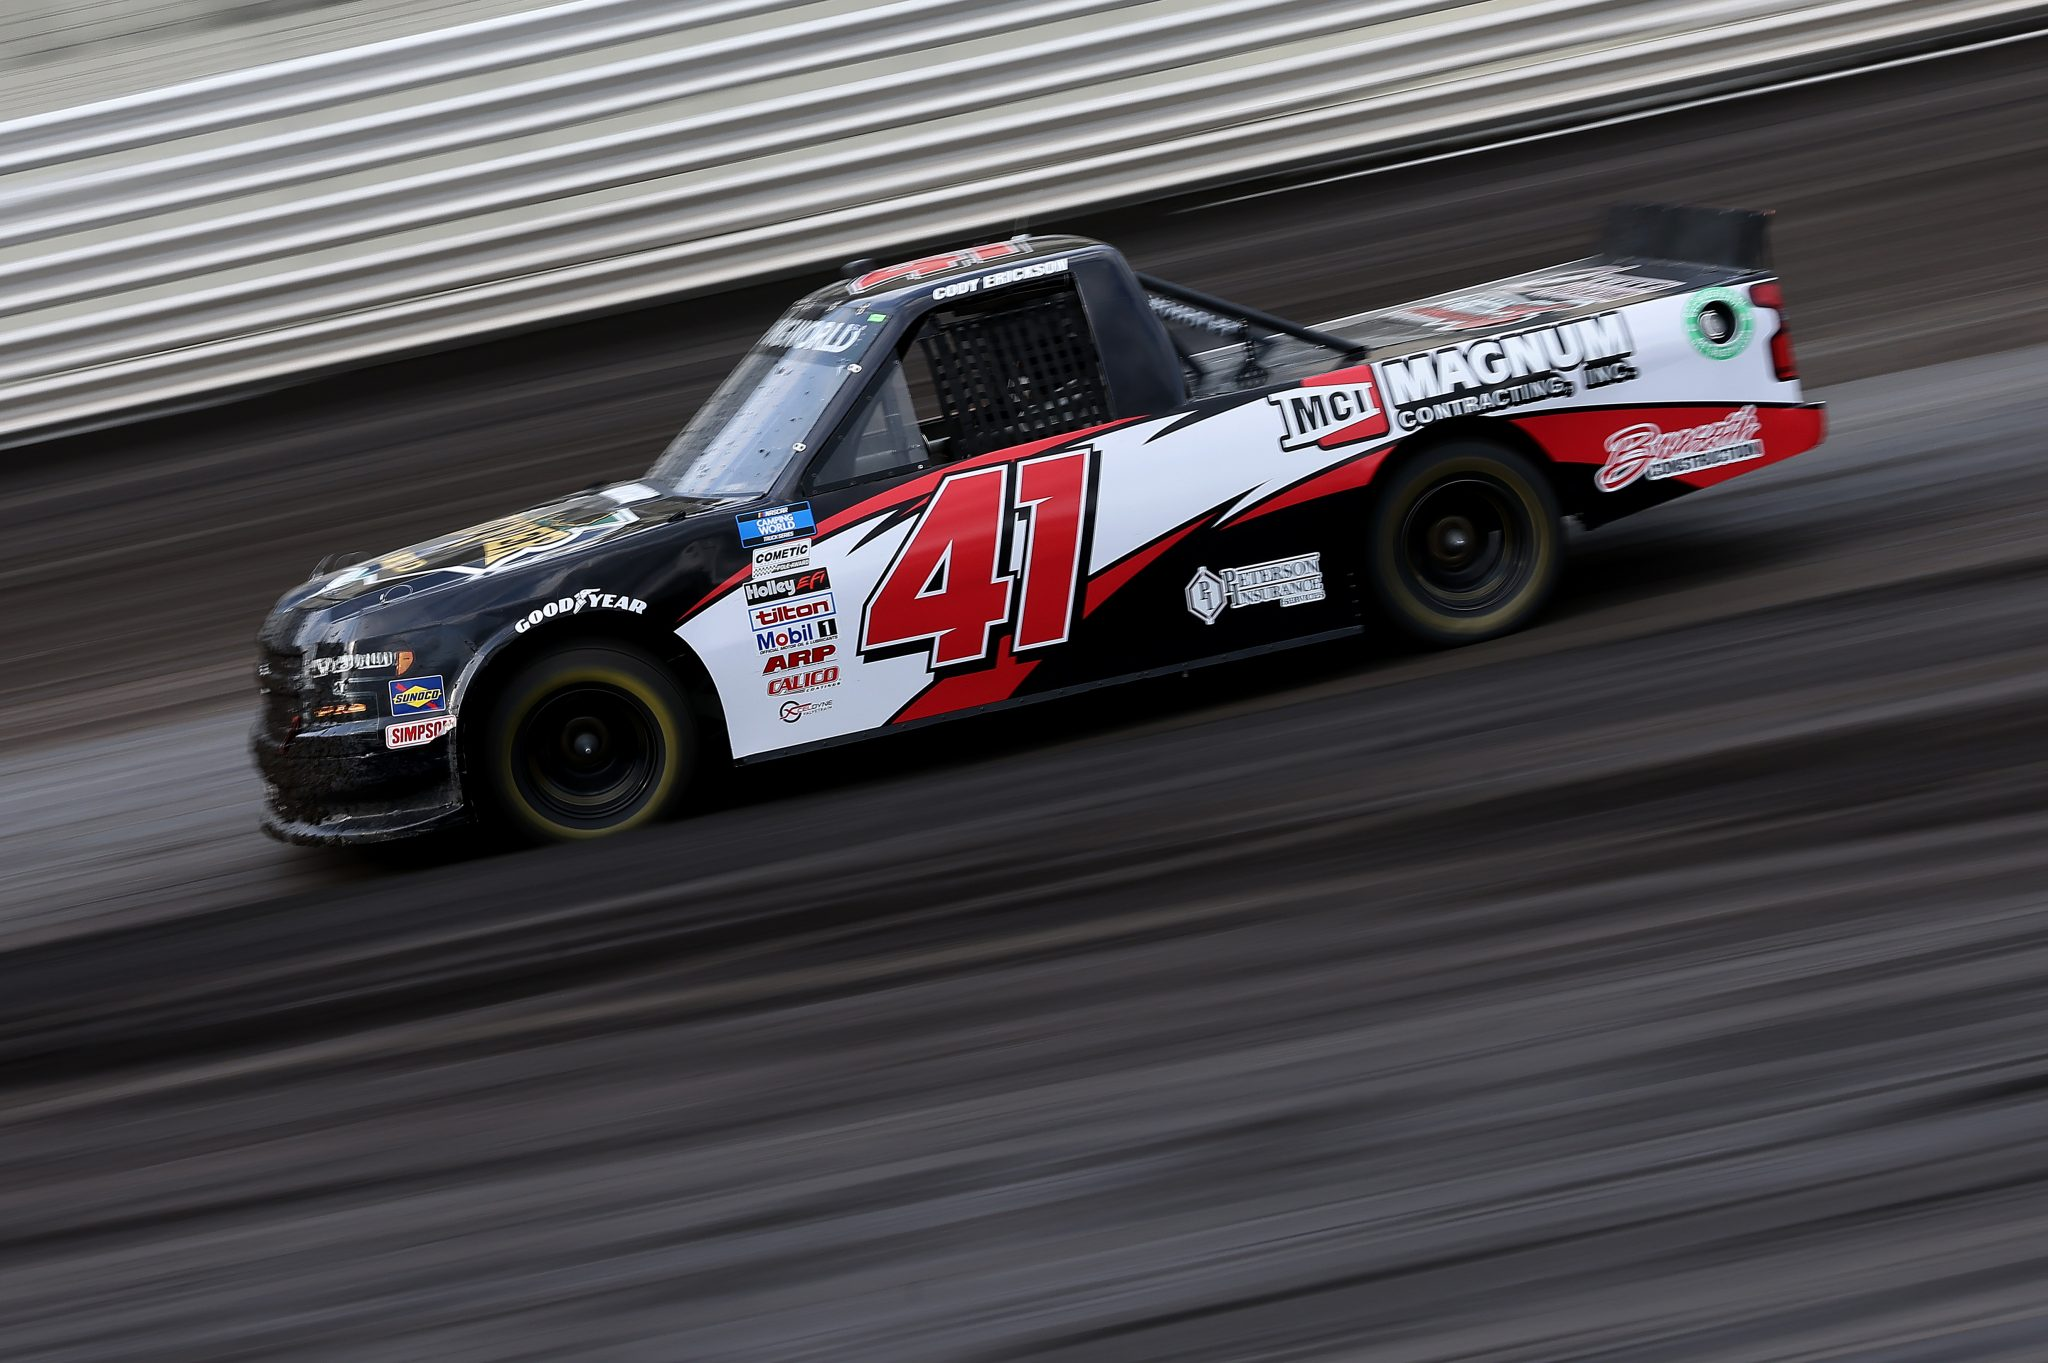 KNOXVILLE, IOWA - JULY 09: Cody Erickson, driver of the #41 Magnum Contracting Inc. Chevrolet, drives during qualifying for the NASCAR Camping World Truck Series Corn Belt 150 presented by Premier Chevy Dealers at Knoxville Raceway on July 09, 2021 in Knoxville, Iowa. (Photo by James Gilbert/Getty Images) | Getty Images